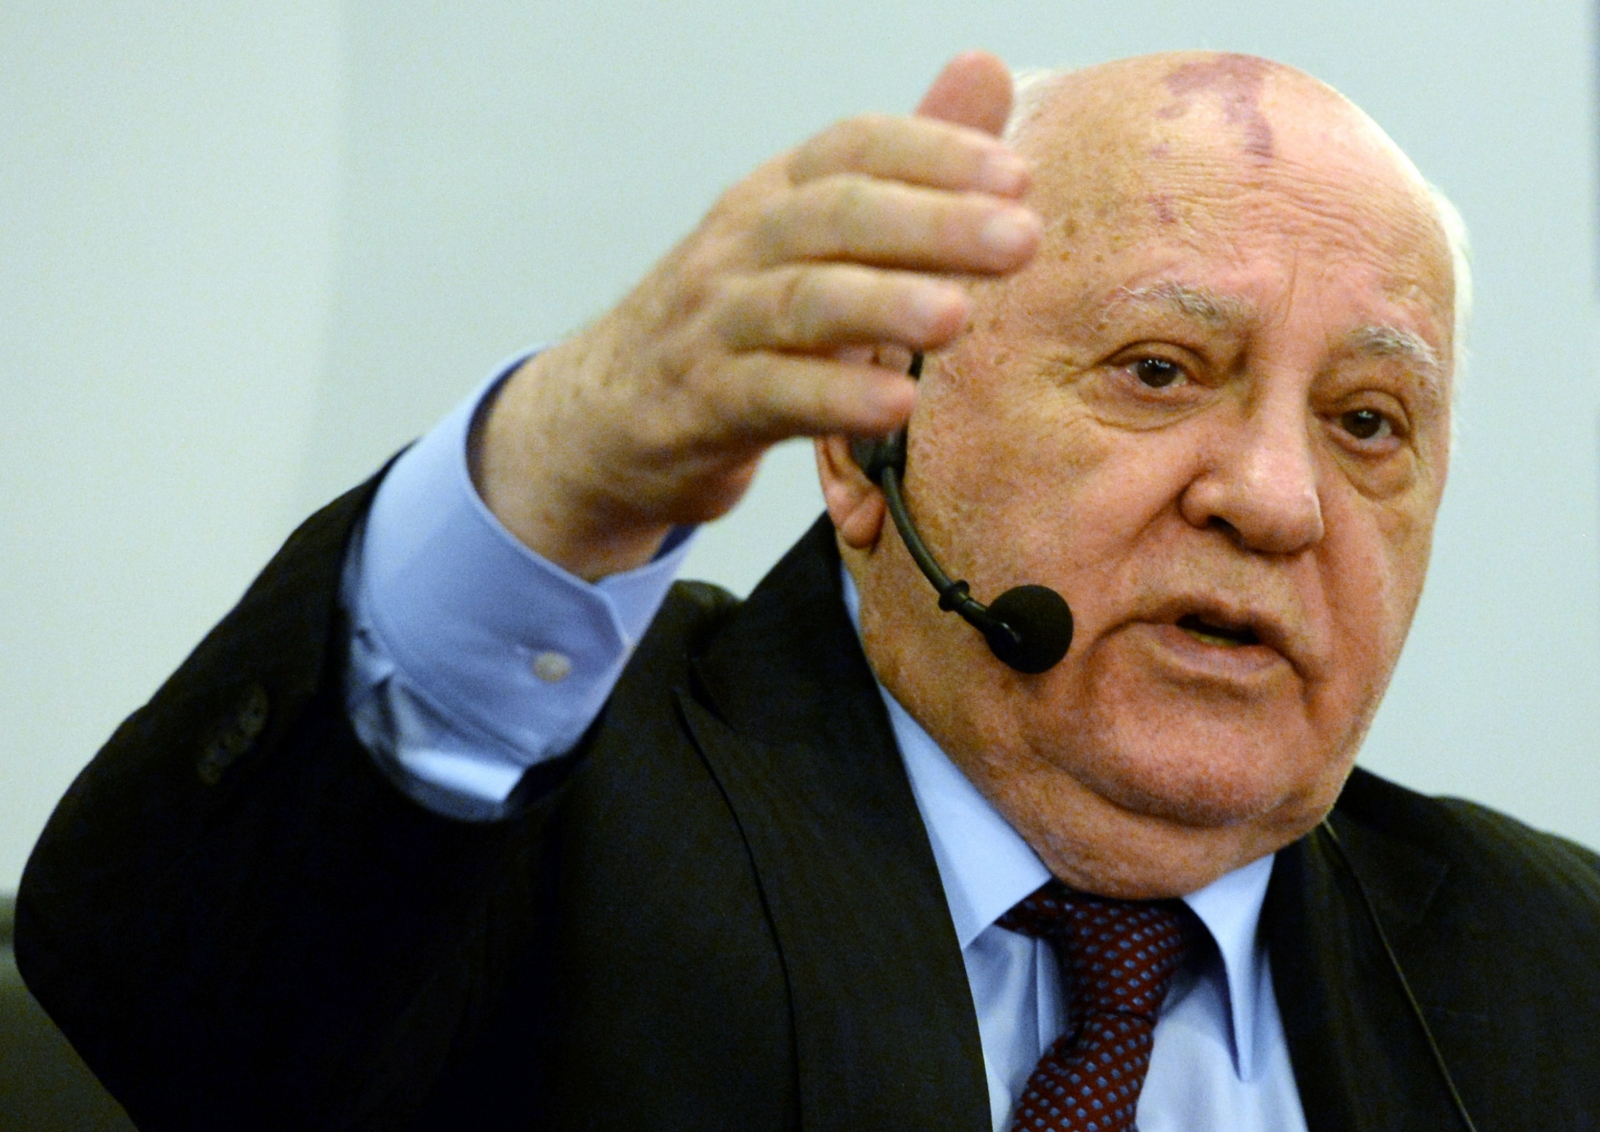 In what year did Gorbachev become president of the USSR